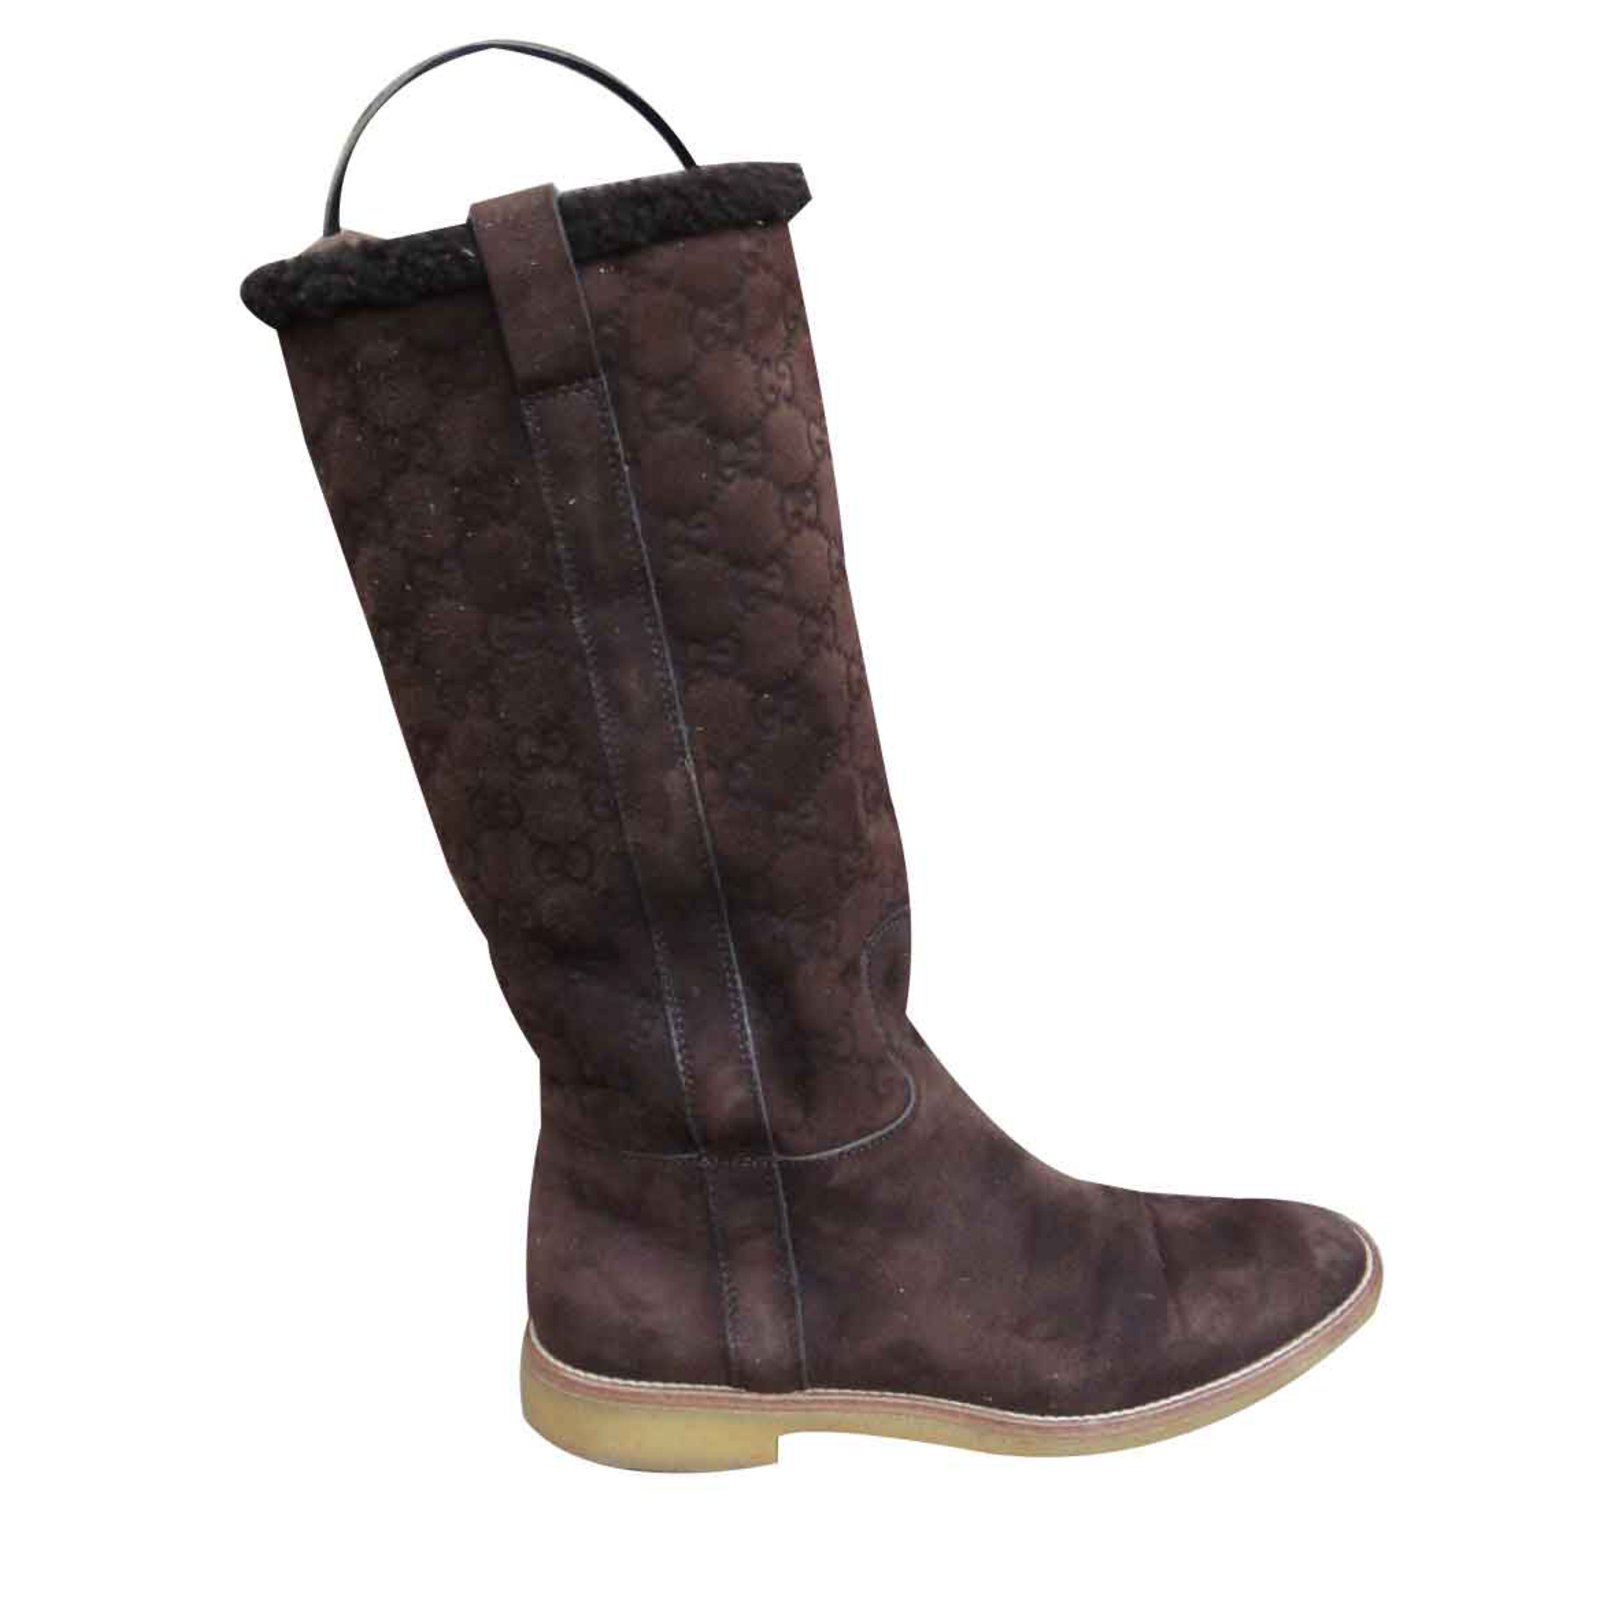 2112dc00 Gucci boots in shearling